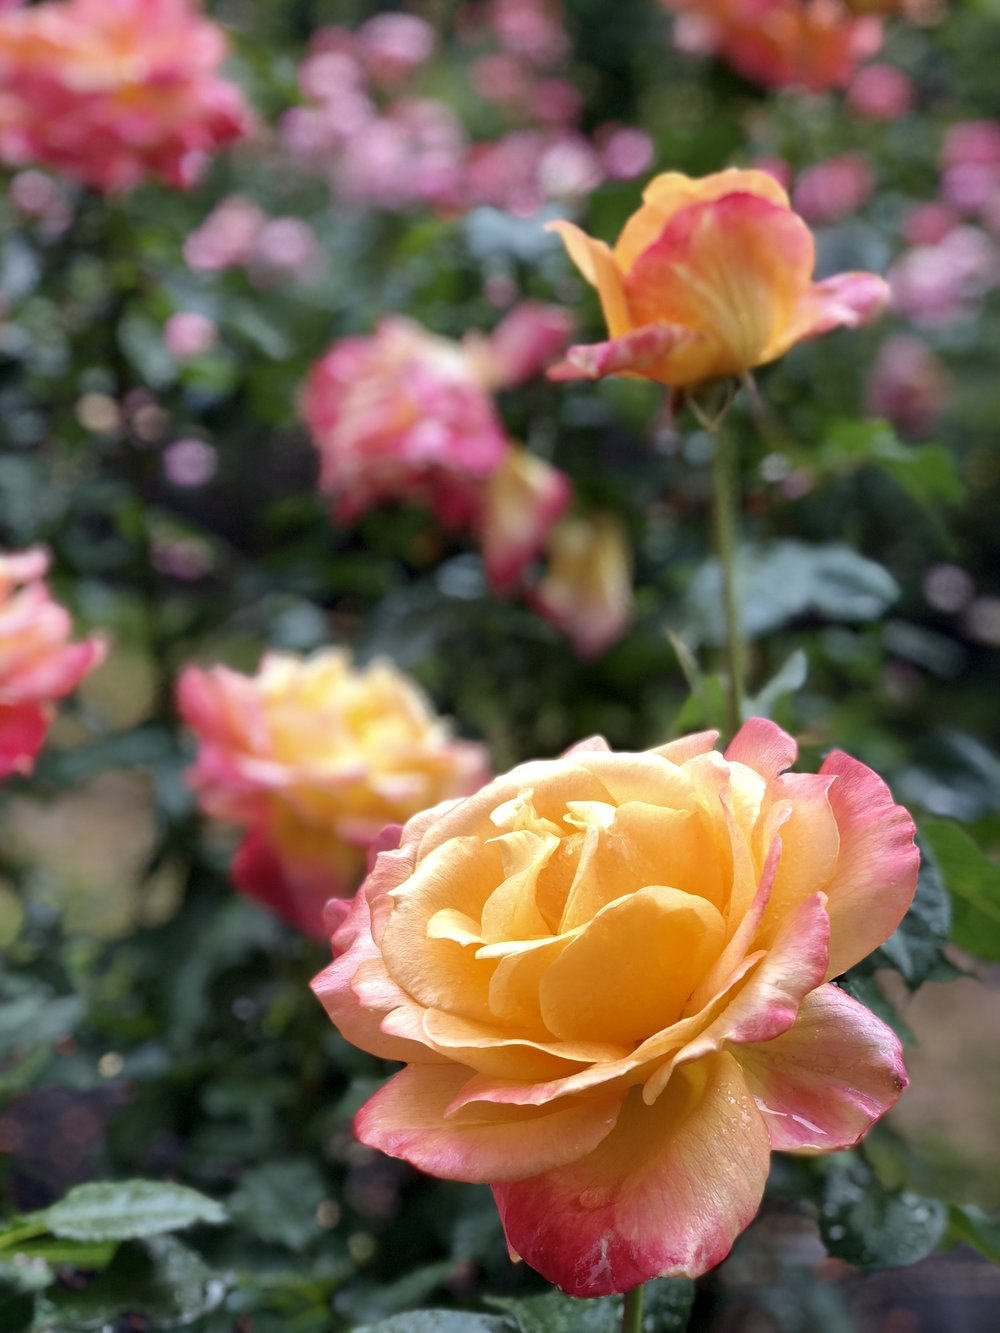 """A perfect rose. This would be an excellent time to remind people that Shoshana means """"rose"""" in Hebrew."""